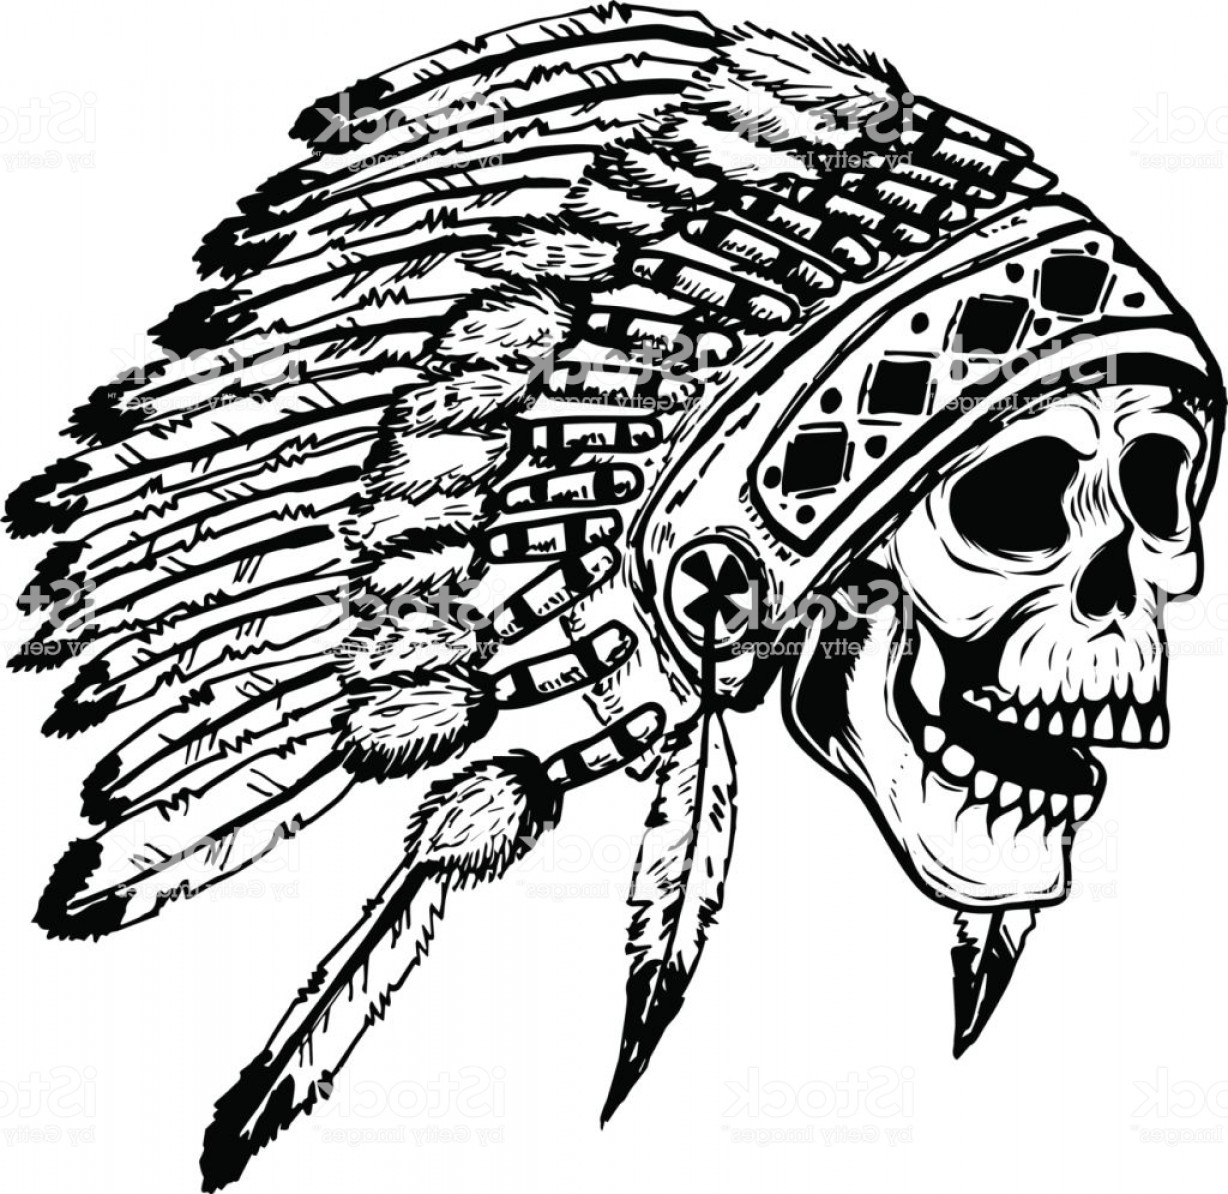 American Indian Chief Vector: Skull In Native American Indian Chief Headdress Design Element For Poster T Shirt Gm